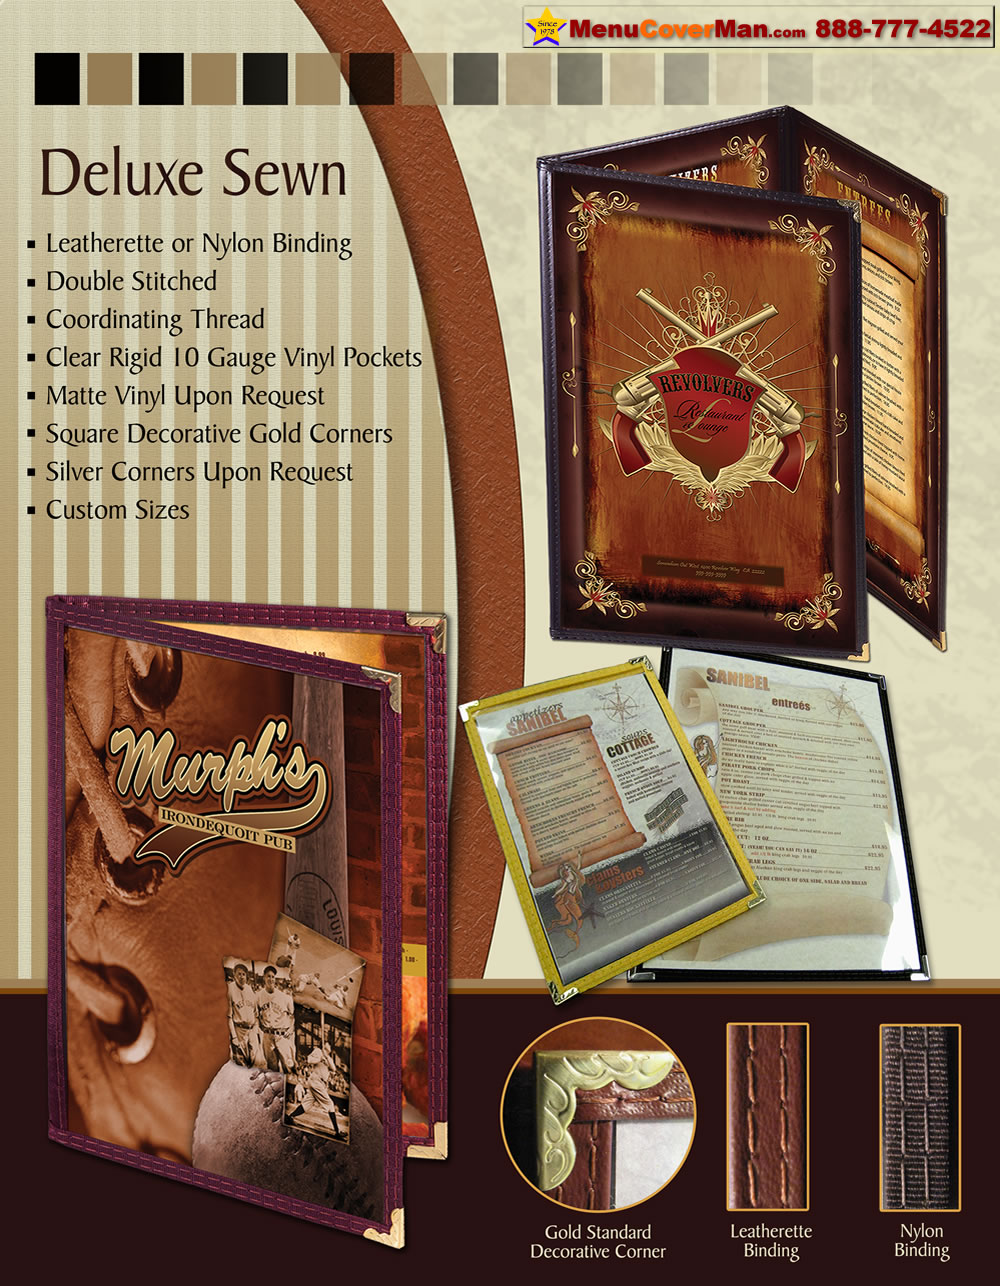 Picture of Menucoverman.com #DS-LEA-TED-8.5X11 - Deluxe Sewn Menu Covers - 2 Pocket Booklet Style - 4 View